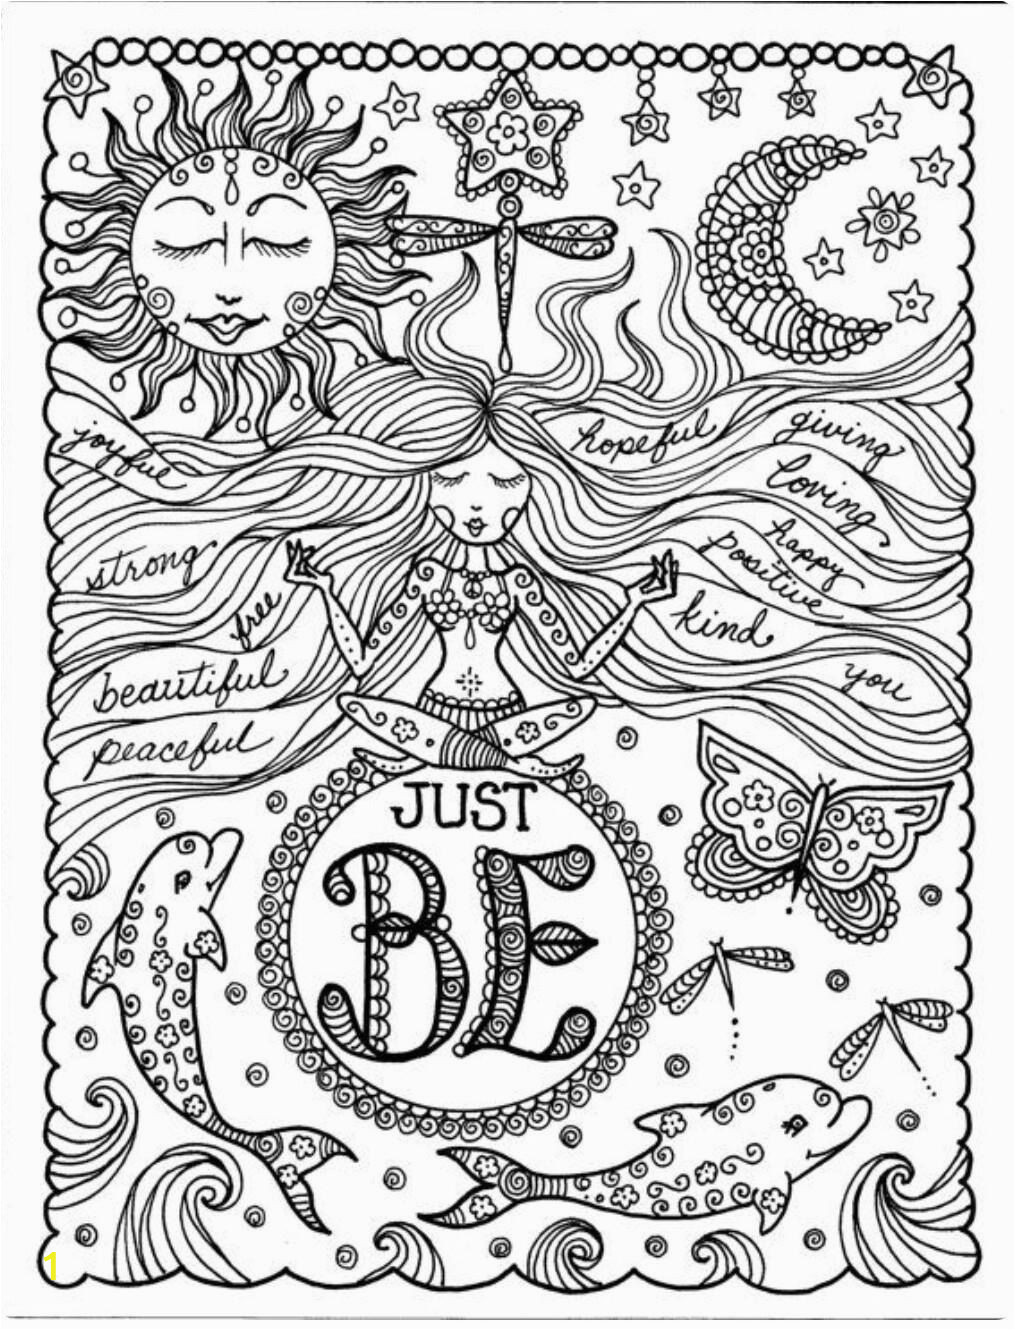 Coloring Pages for Teenage Girl Printable Pin by Mike Suran On Coloring Pages for Masndy